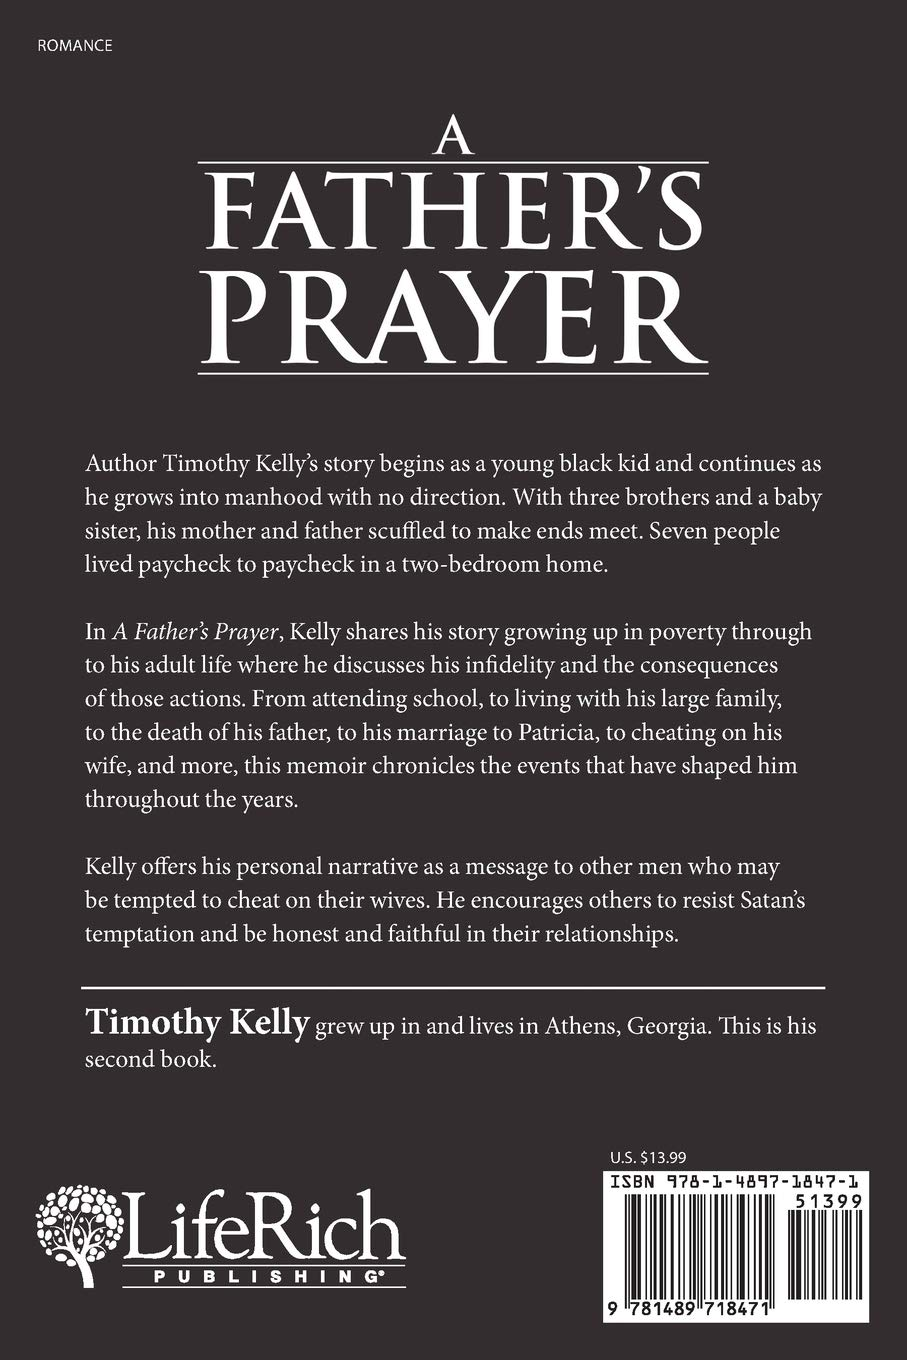 A Father's Prayer: Timothy Kelly: 9781489718471: Amazon com: Books